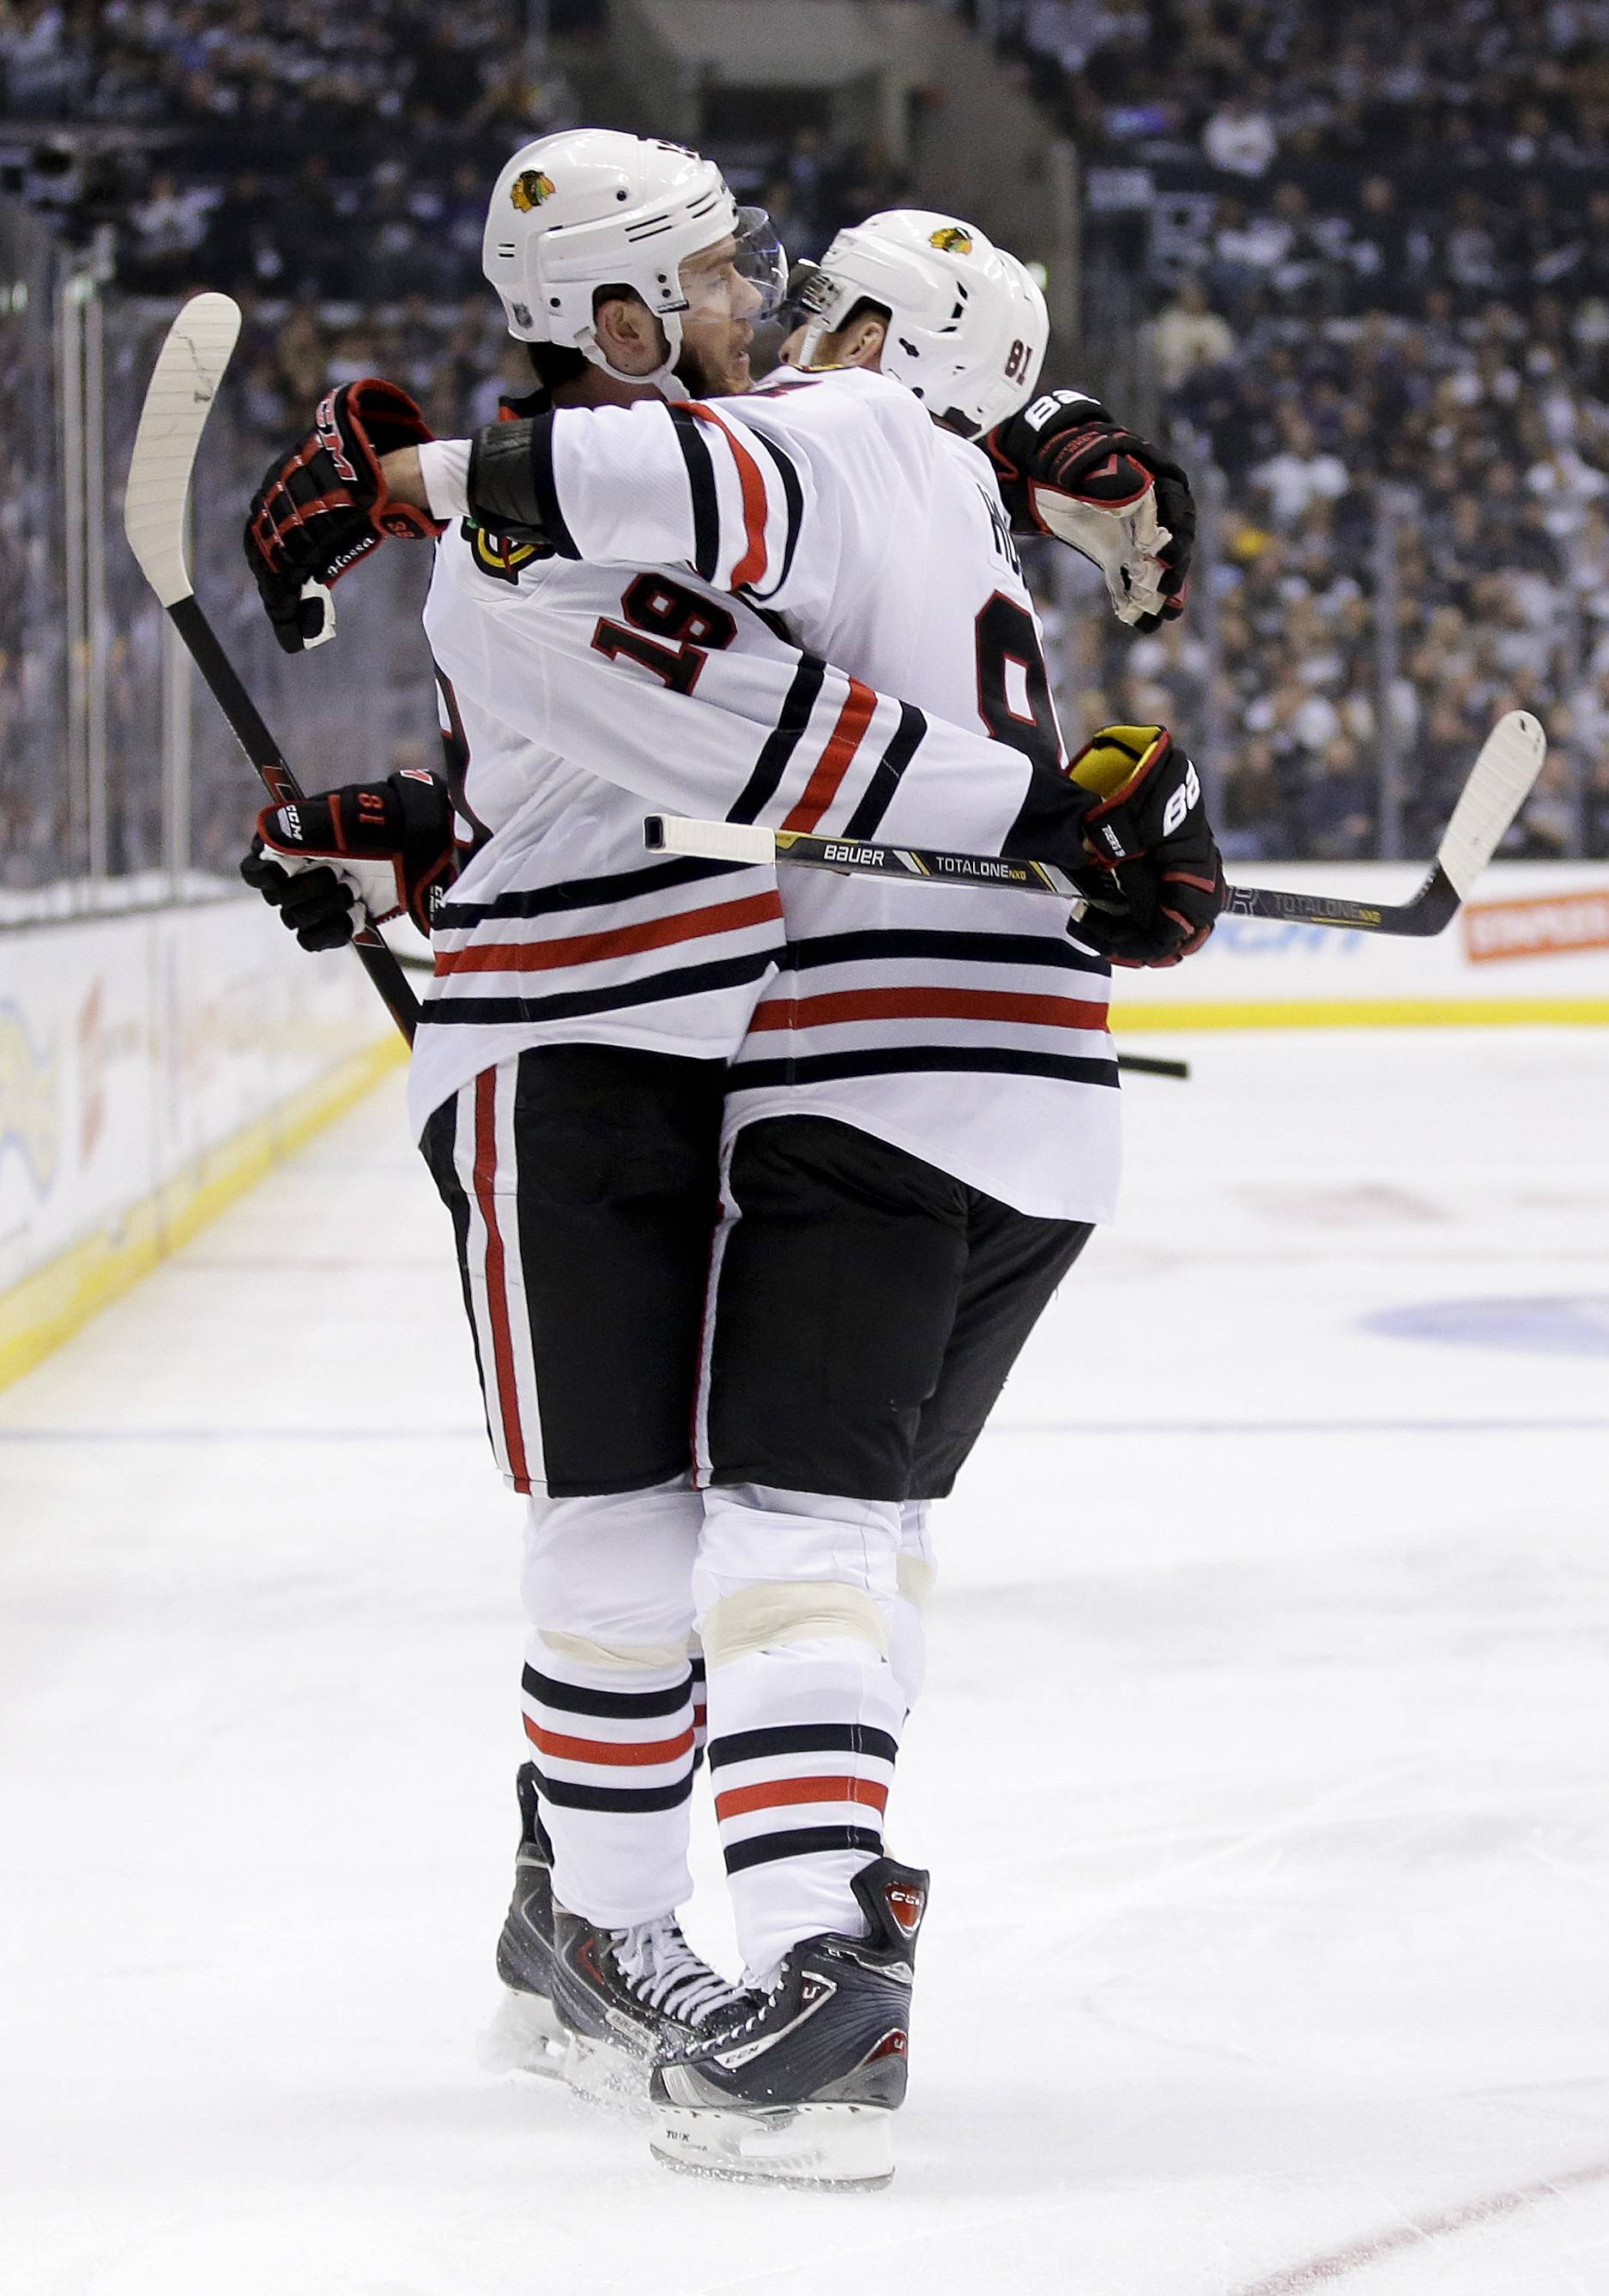 Chicago Blackhawks center Jonathan Toews, left, celebrates his goal against the Los Angeles Kings with right wing Marian Hossa during the first period of Game 3 of the Western Conference finals of the NHL hockey Stanley Cup playoffs in Los Angeles, Saturday, May 24, 2014.